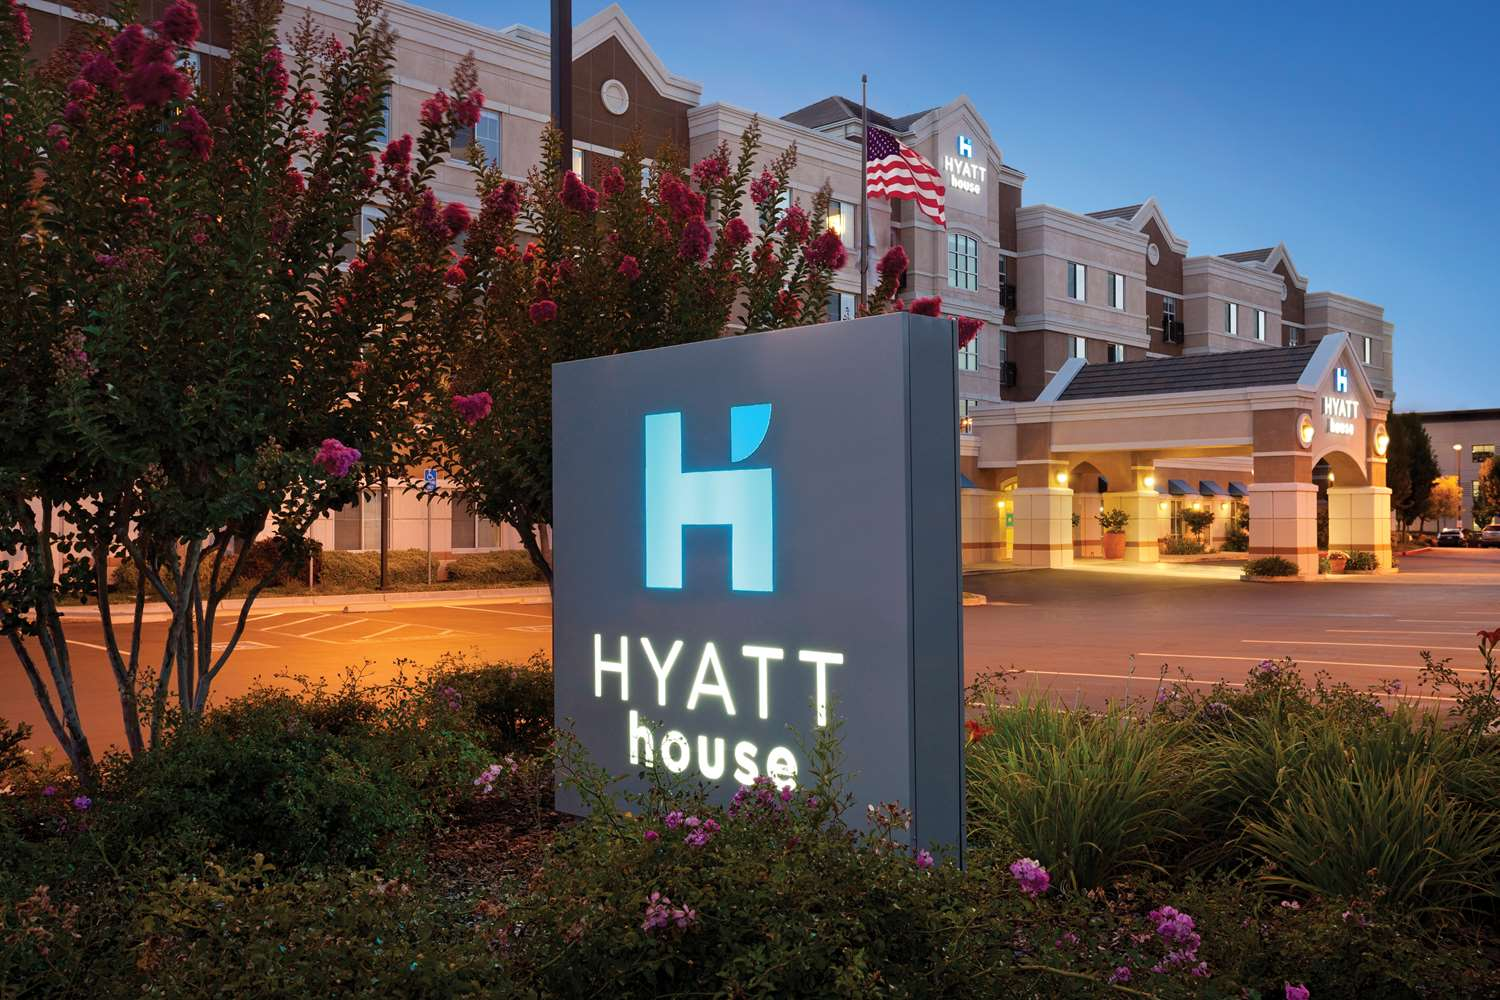 Hyatt House Hotel Pleasant Hill